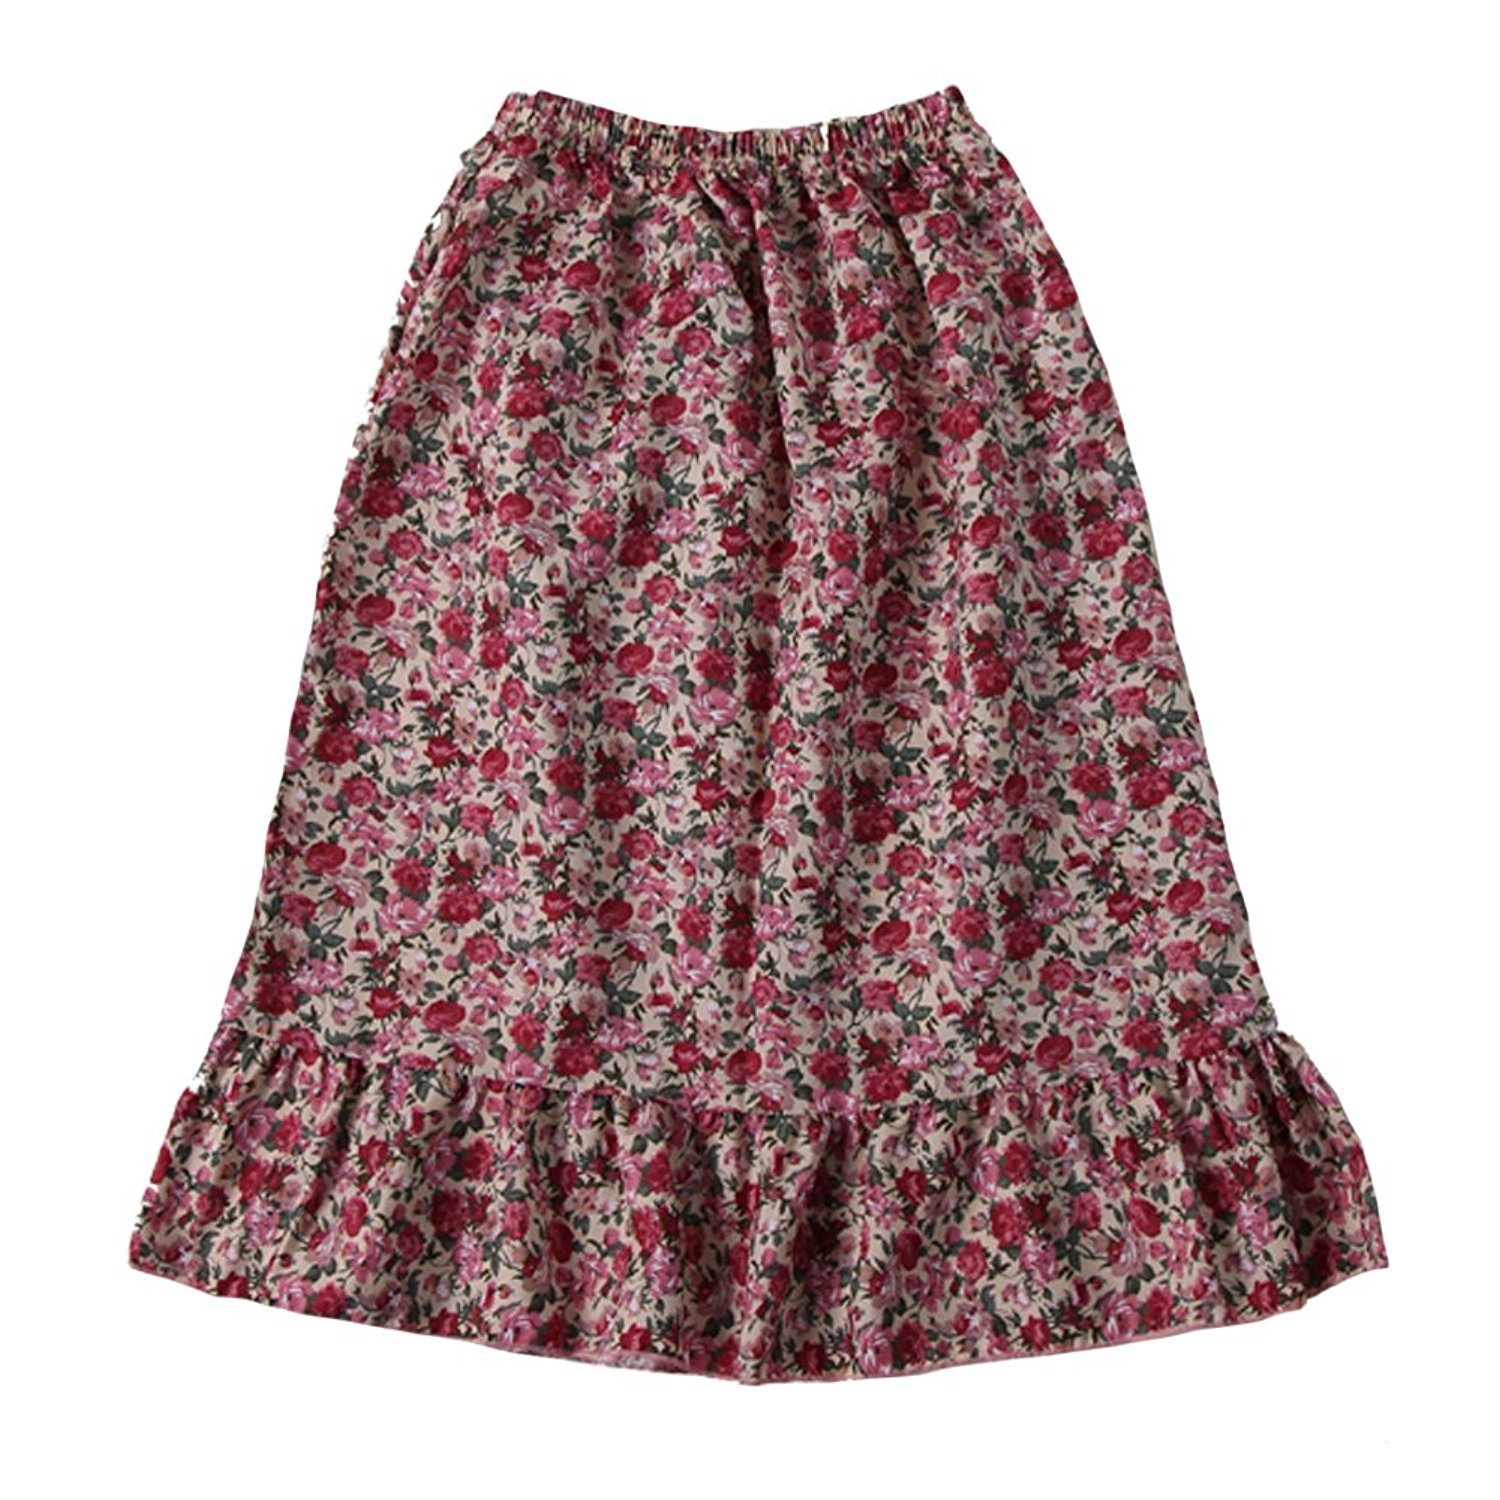 Making Believe Women's Calico Pioneer Peasant Costume Skirt (Women's X-Large 8/10, Pink Calico)